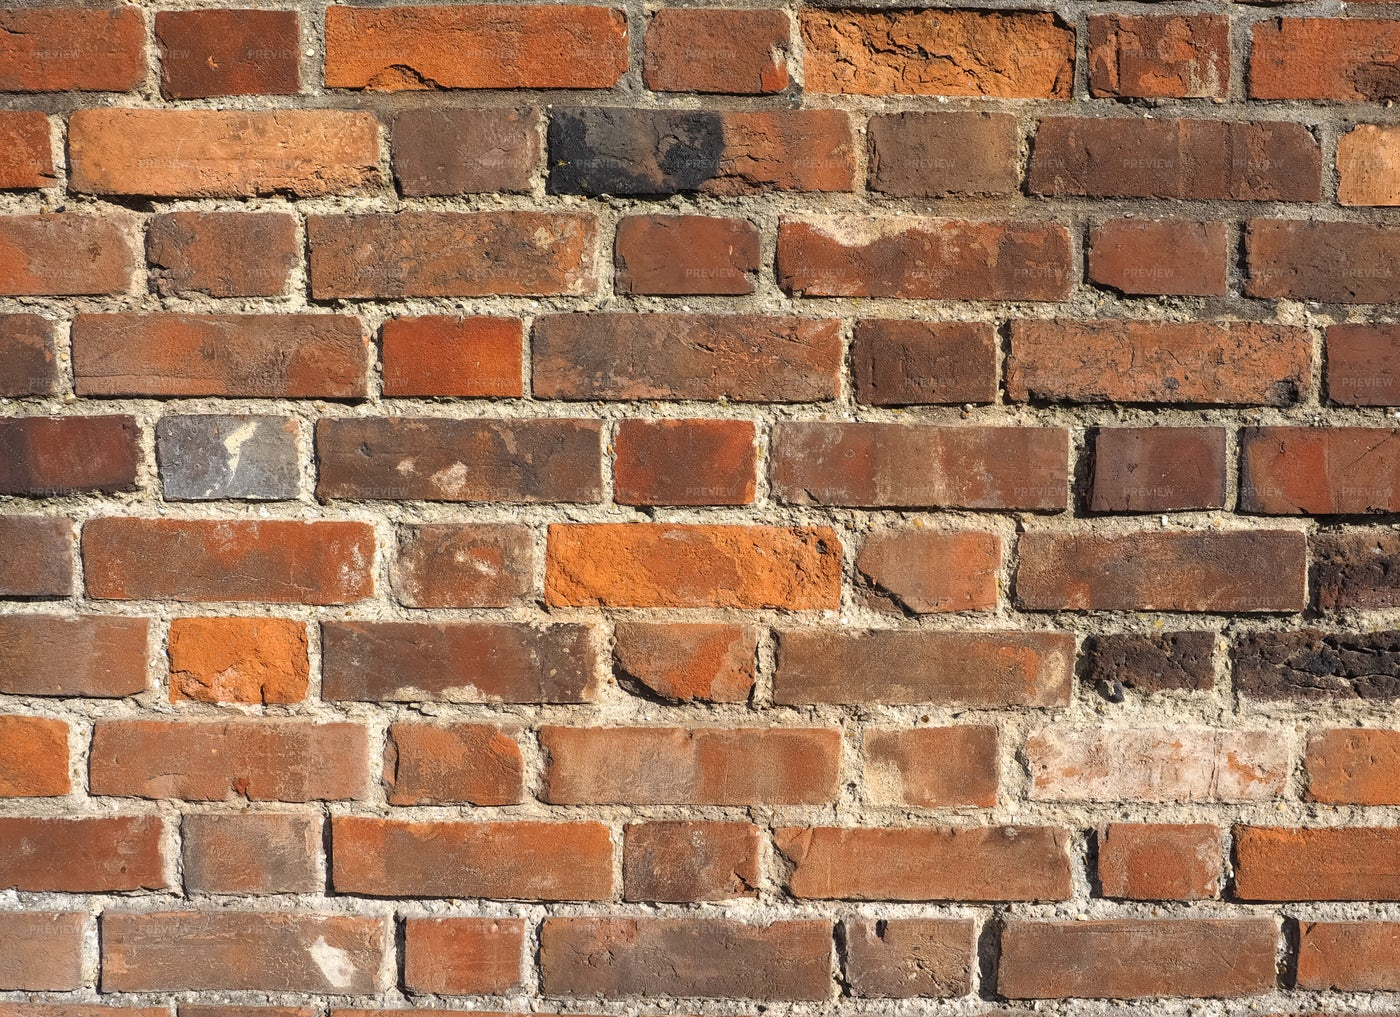 Red And Brown Brick Wall: Stock Photos